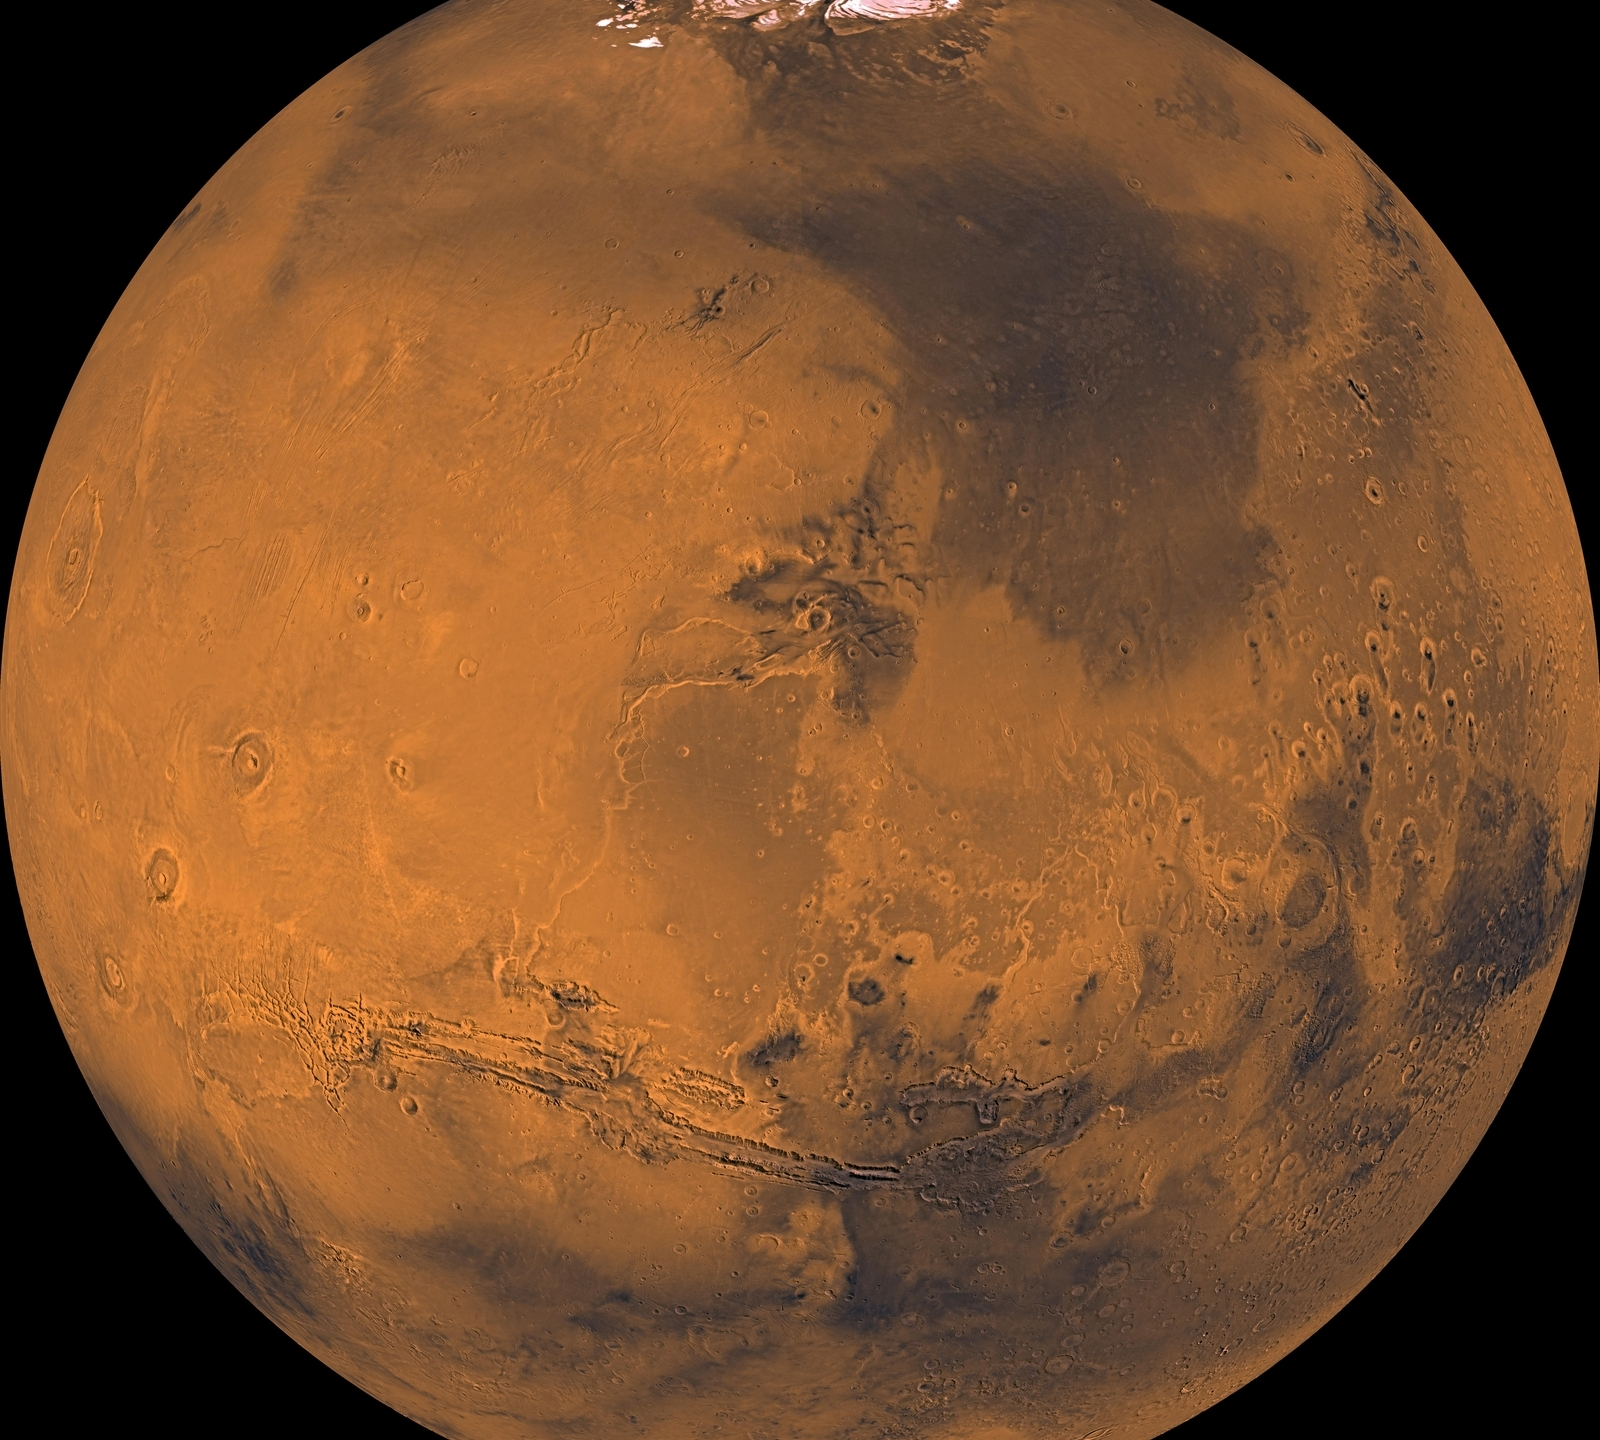 mars picture two whole planet_1533083467985.jpg.jpg